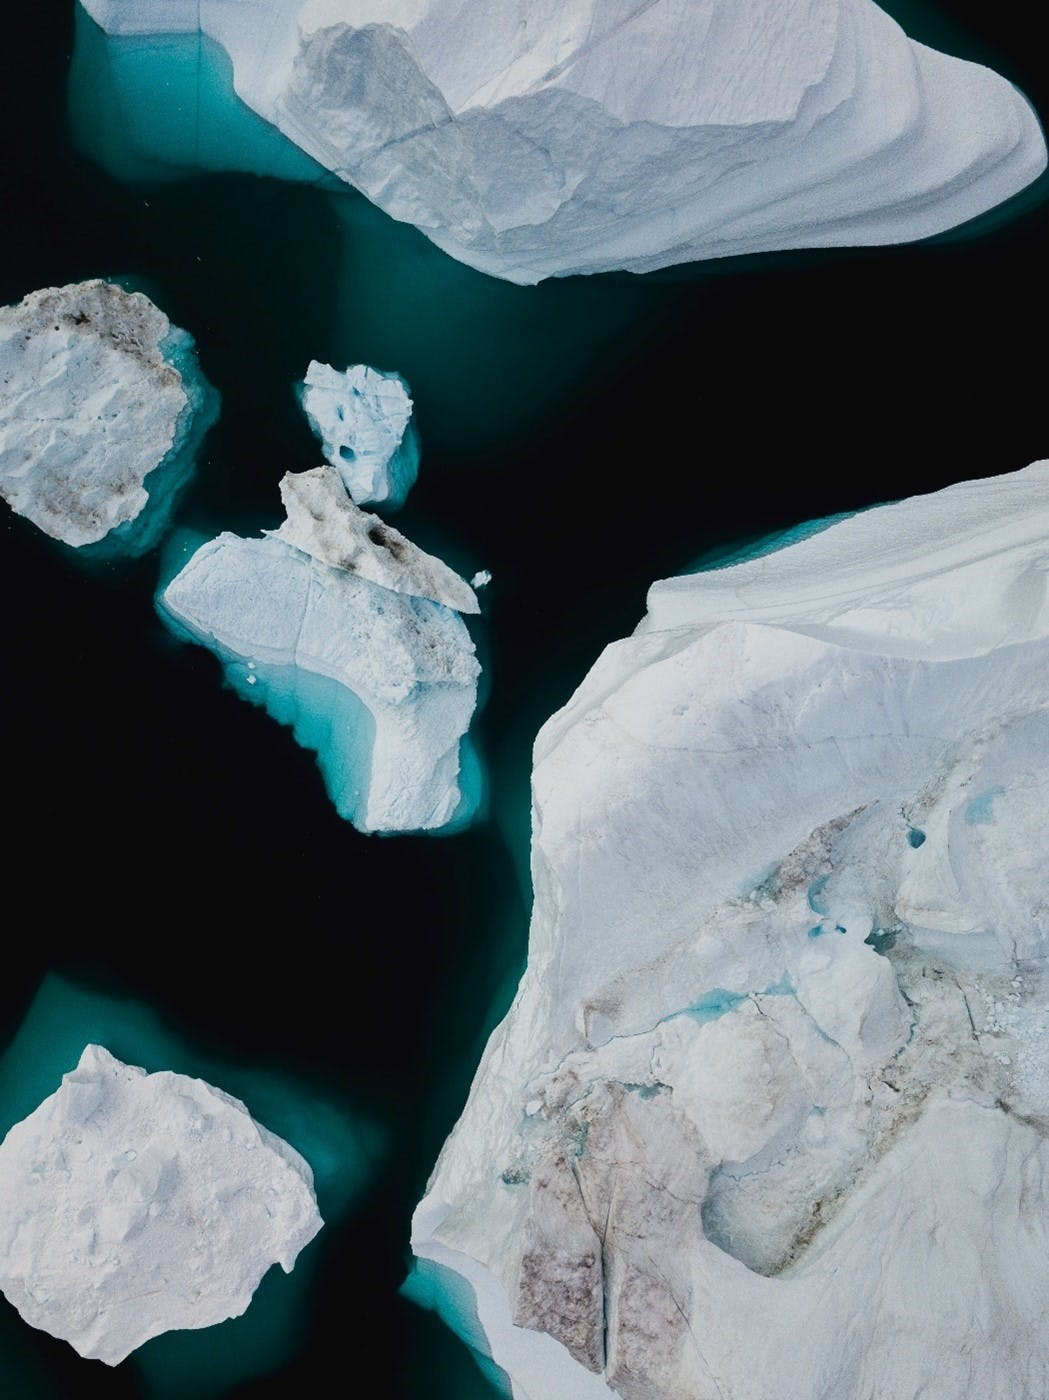 An impressive aerial image of floating sea ice. Climate change is causing a loss, on average, of 150 to 280 billion tons of ice per year in Greenland and Antarctic.